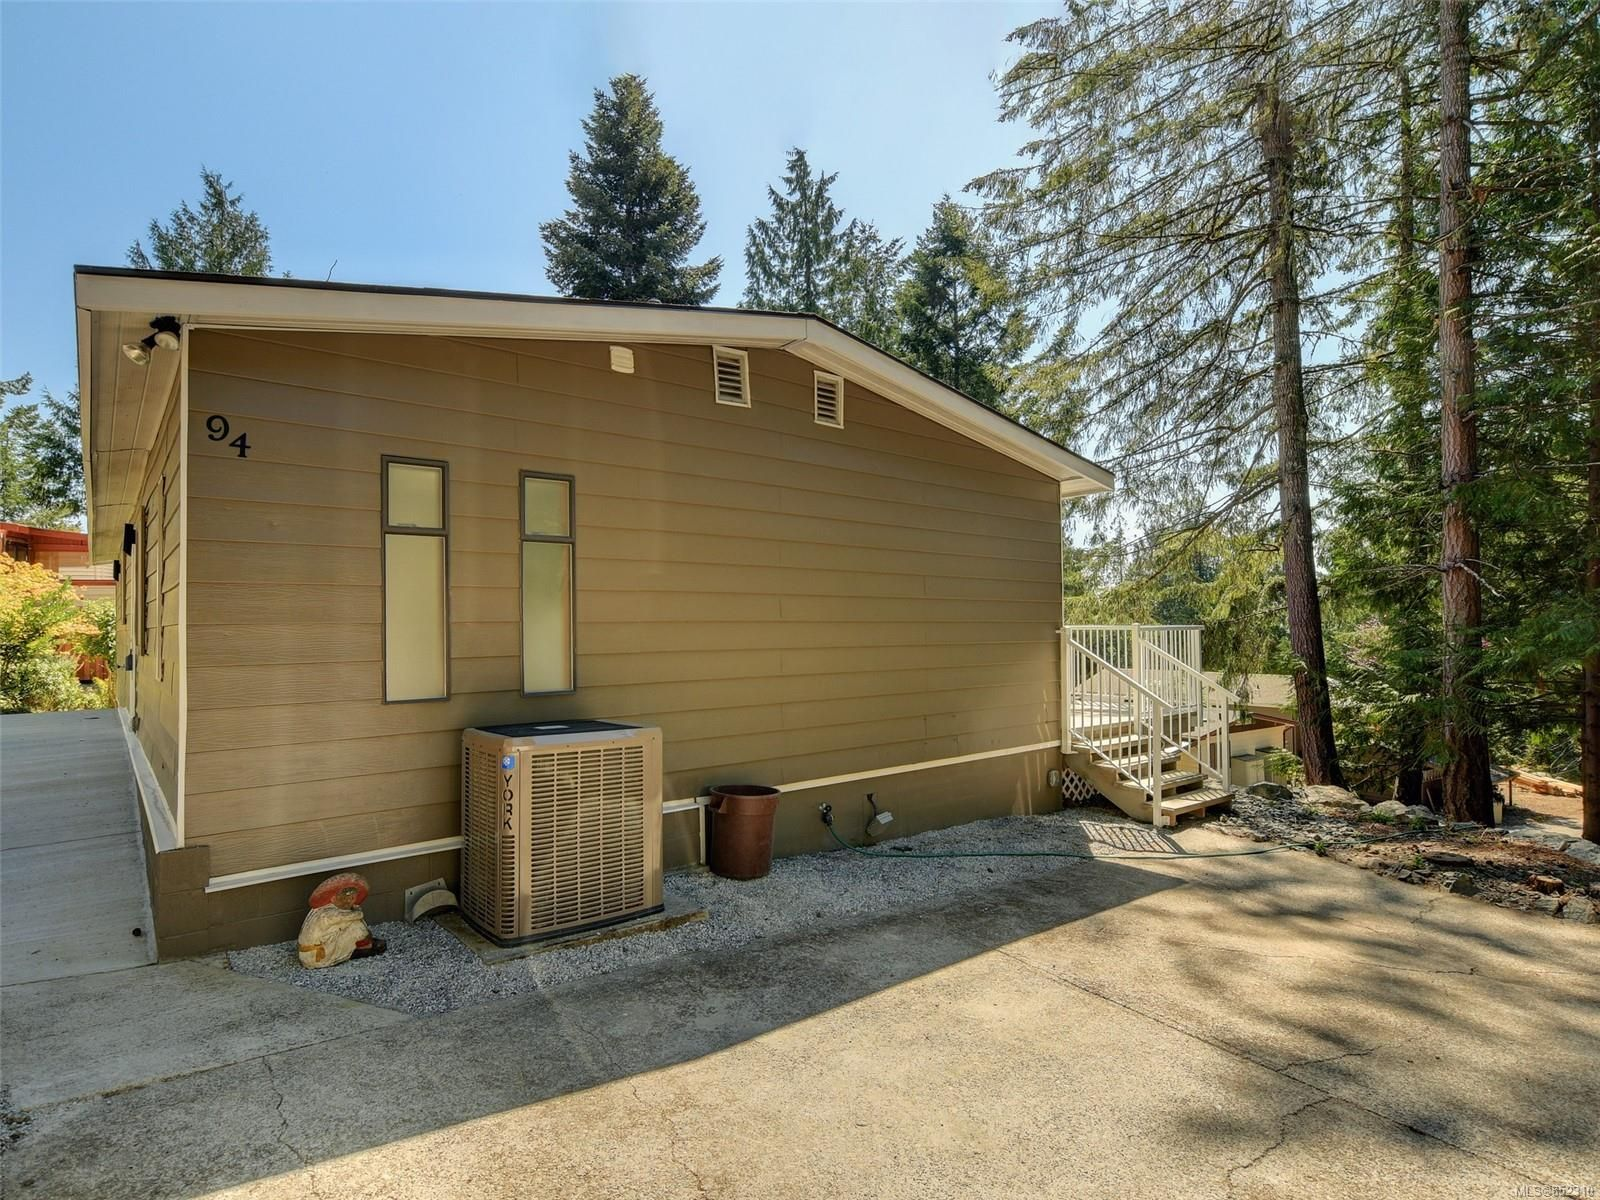 Photo 22: Photos: 94 5838 Blythwood Rd in : Sk Saseenos Manufactured Home for sale (Sooke)  : MLS®# 852310